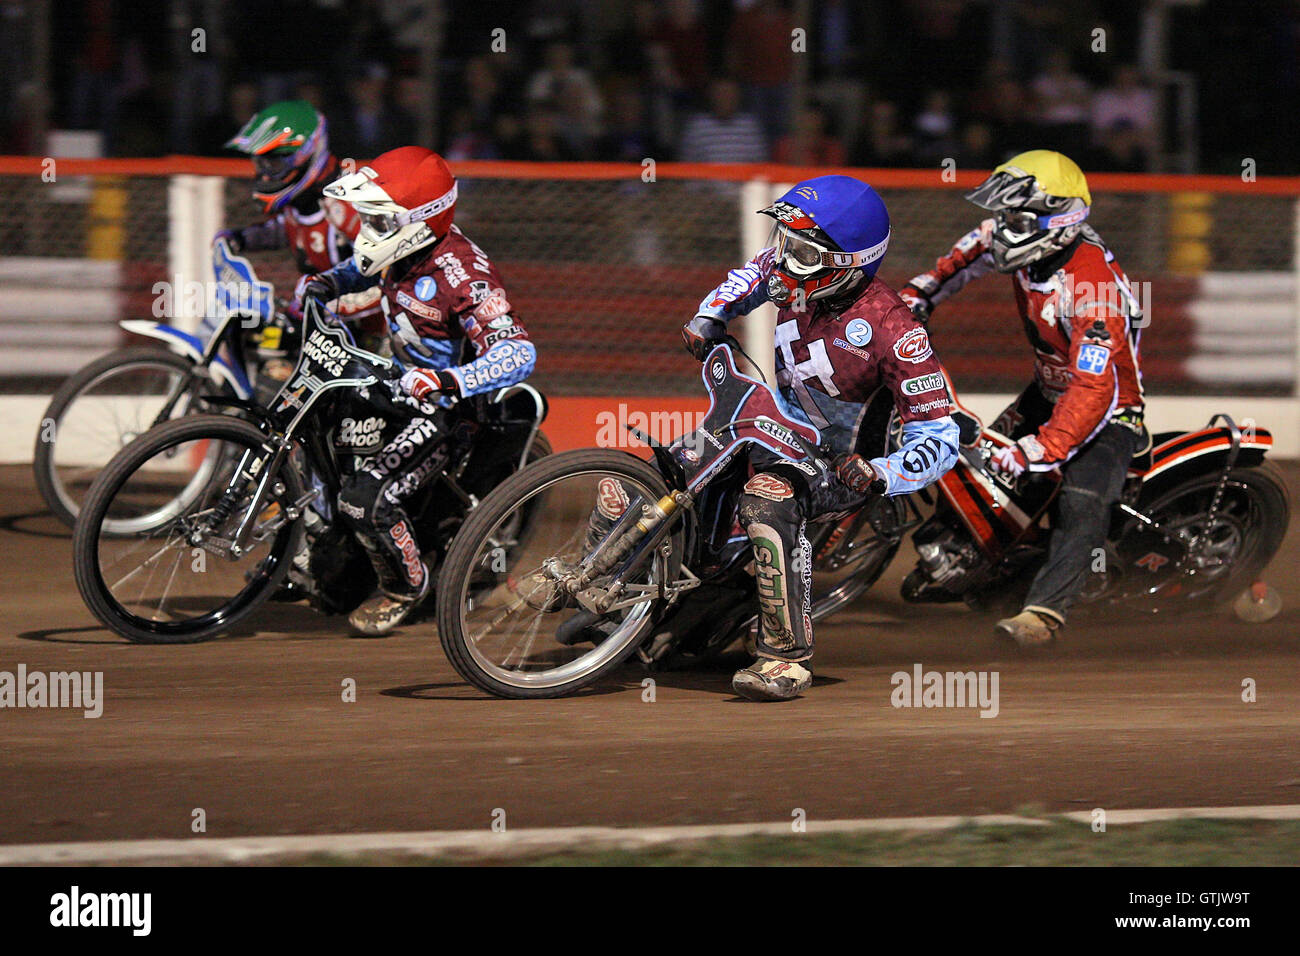 Heat 10: Lee Richardson (red), Partick Hougaard (green), Joonas Kylmakorpi (blue) and Morten Risager - Lakeside - Stock Image